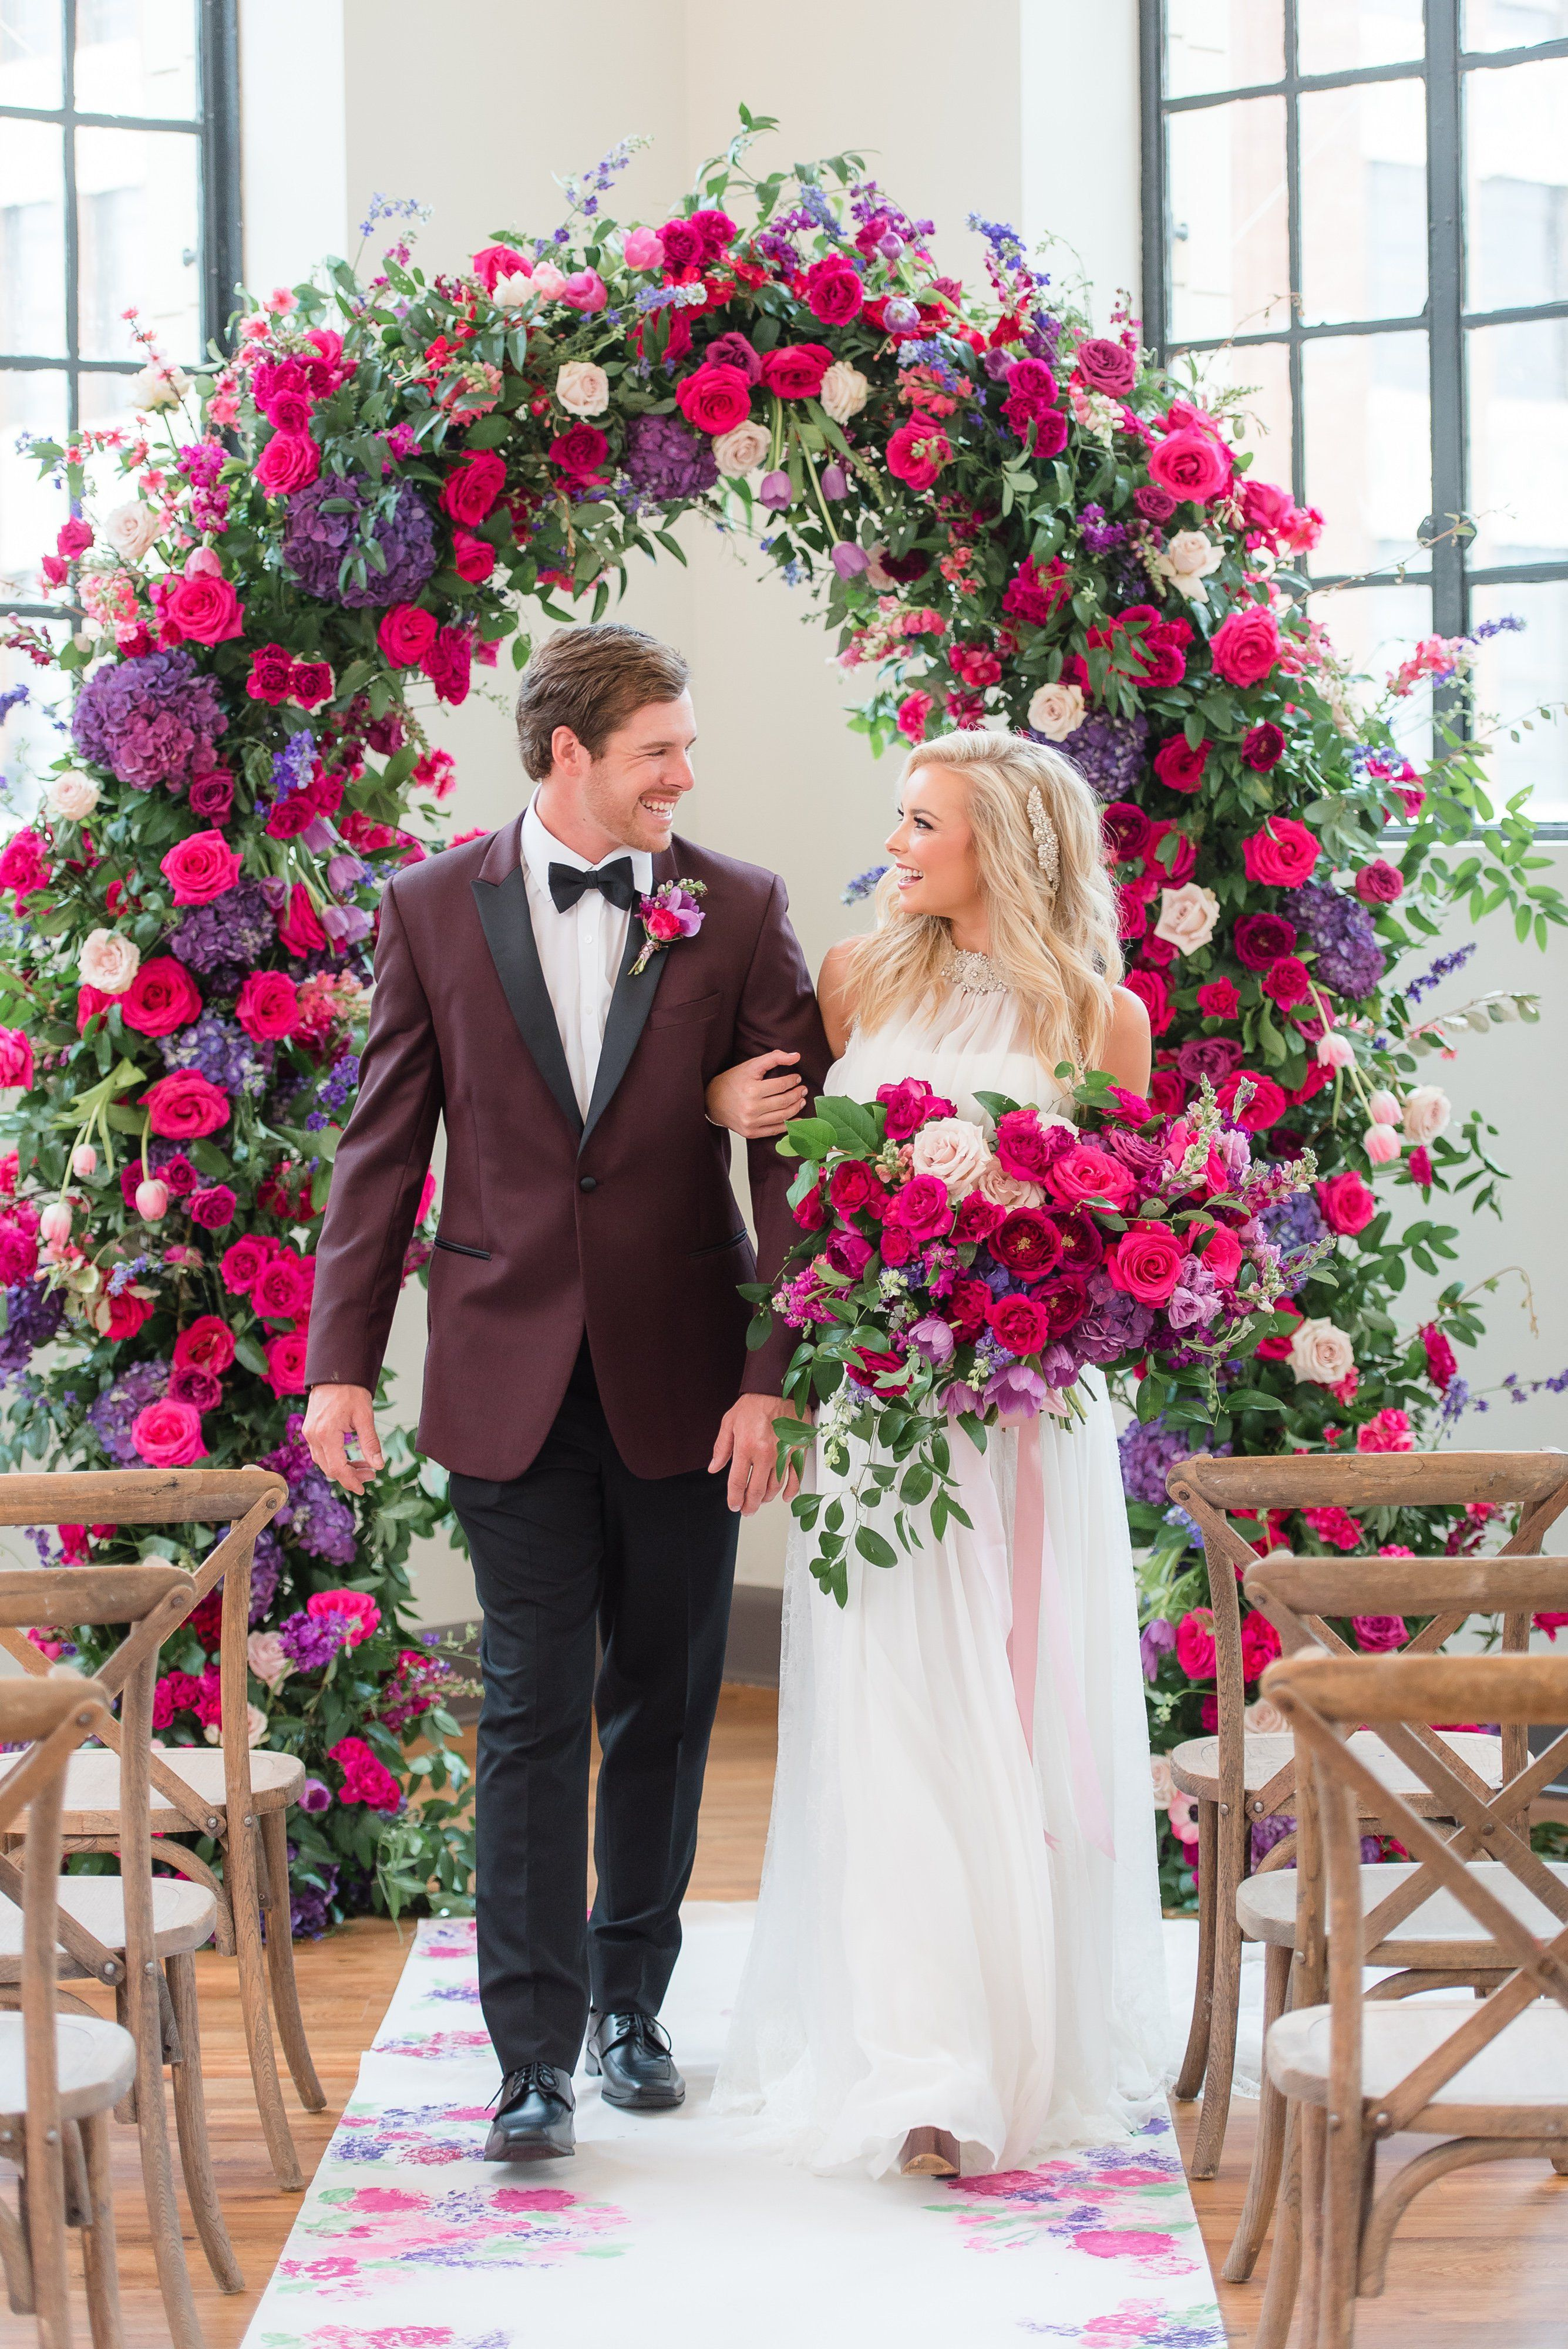 Alabama Weddings Magazine Style Series Shoot With Magnolia Vine Events Lighting Production On Site Productions Event Fl Design Cece Designs